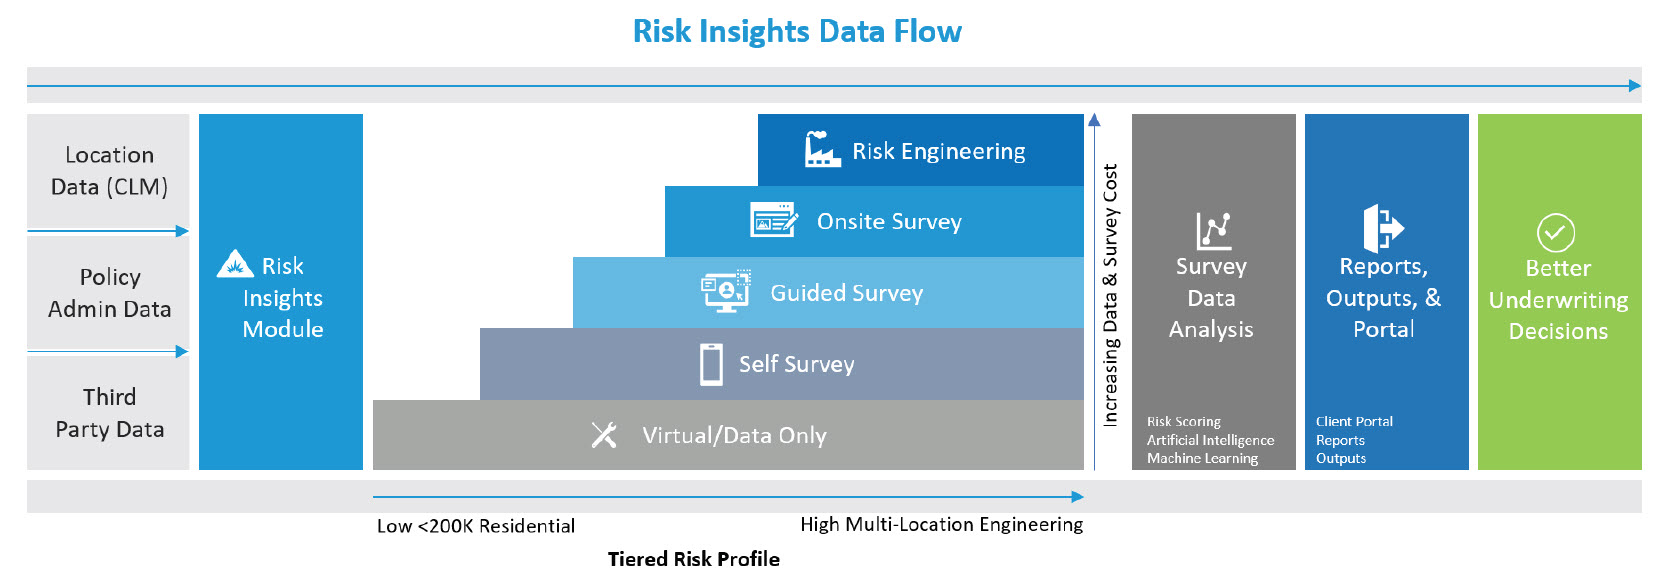 Risk Insights Tiered Risk Profile